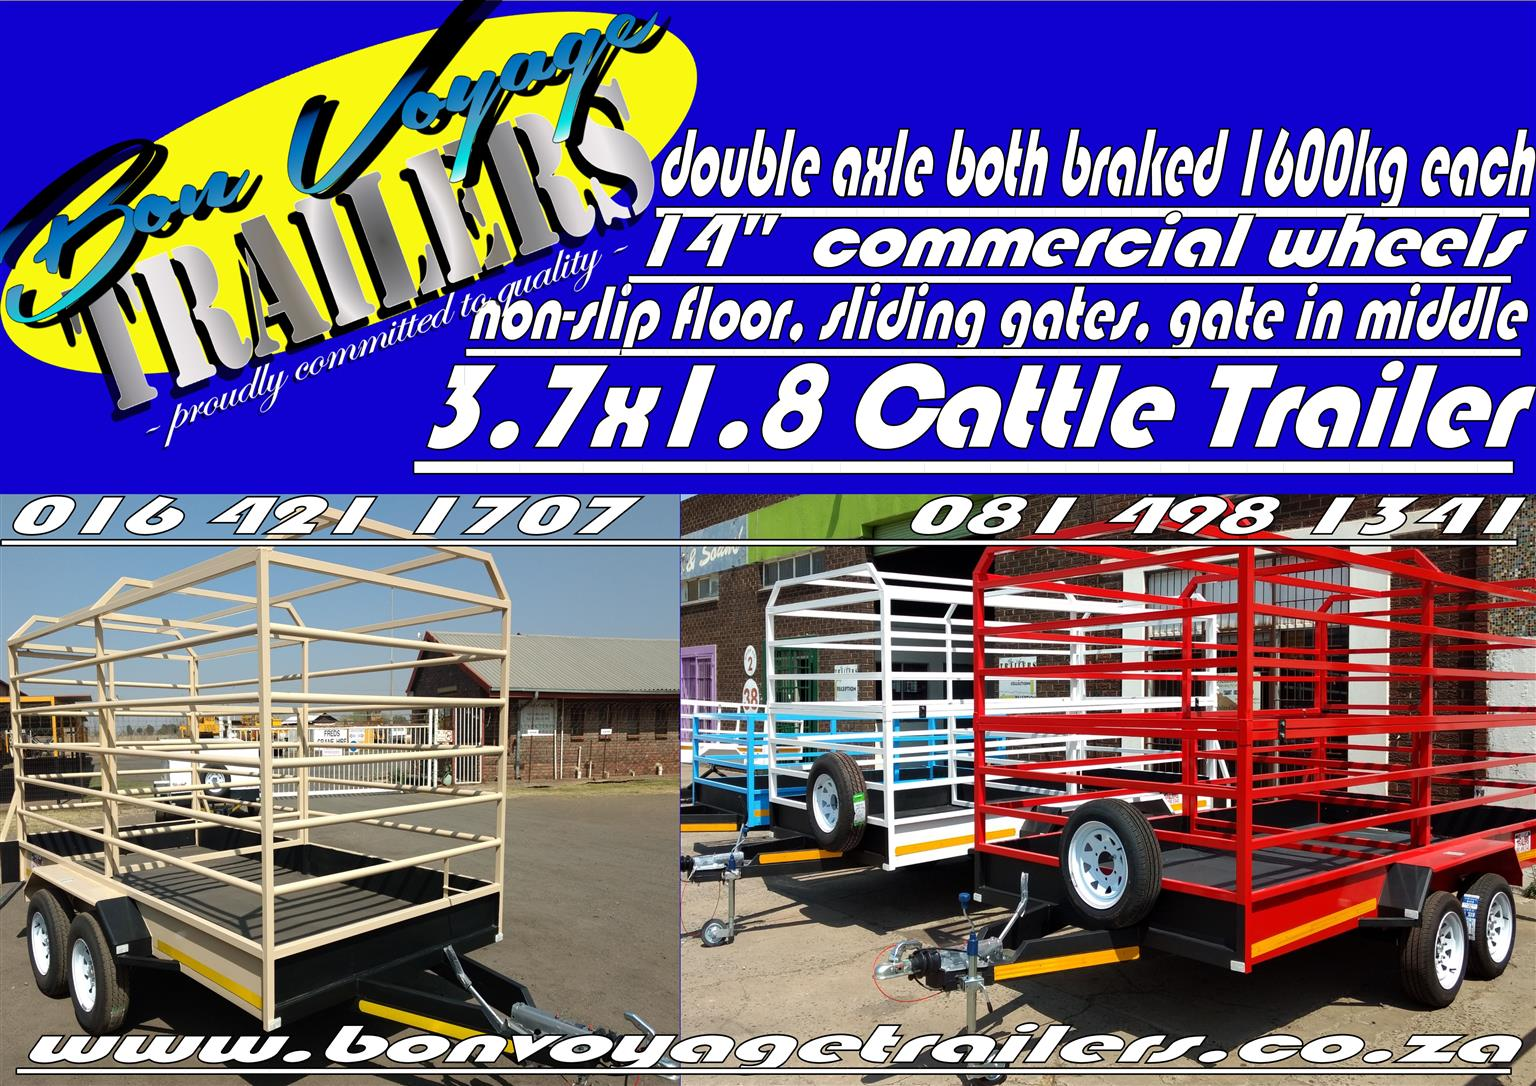 THE HIGHEST QUALITY MANUFACTURED TRAILERS